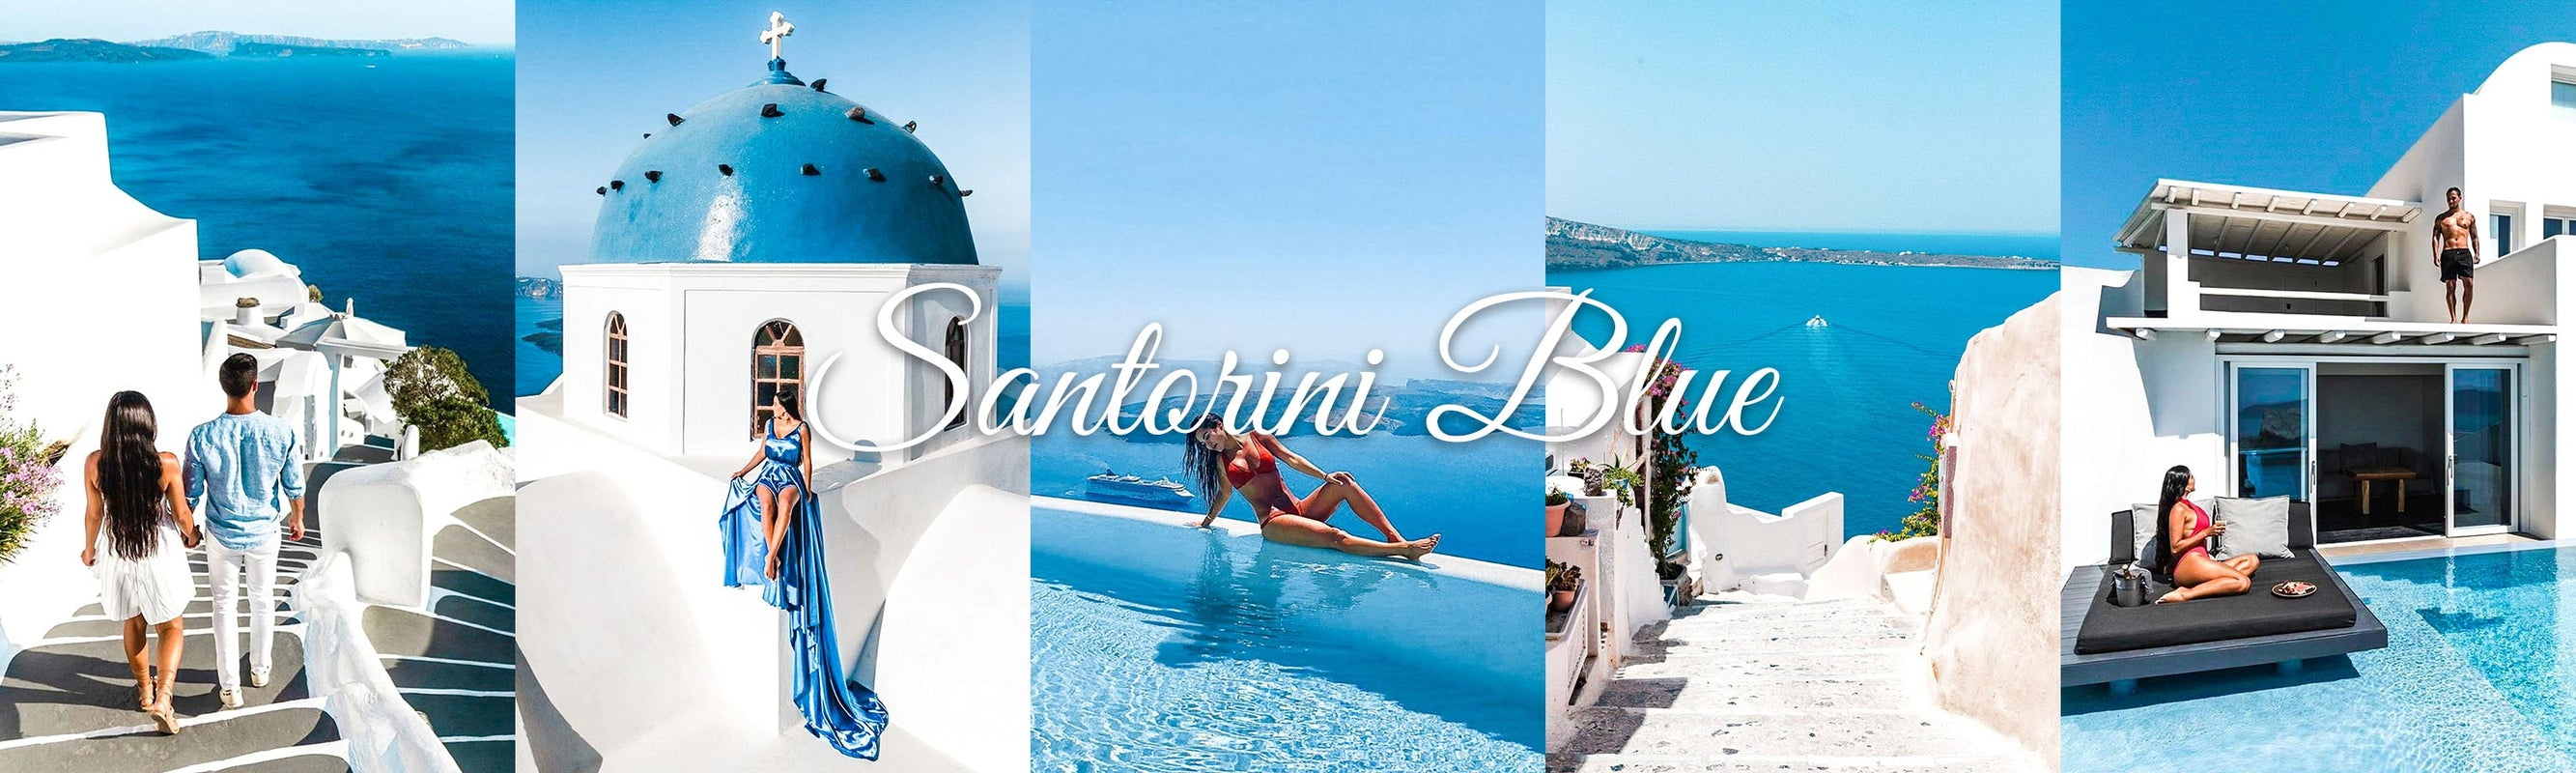 Santorini Blue Lightroom Presets For Mobile And Desktop